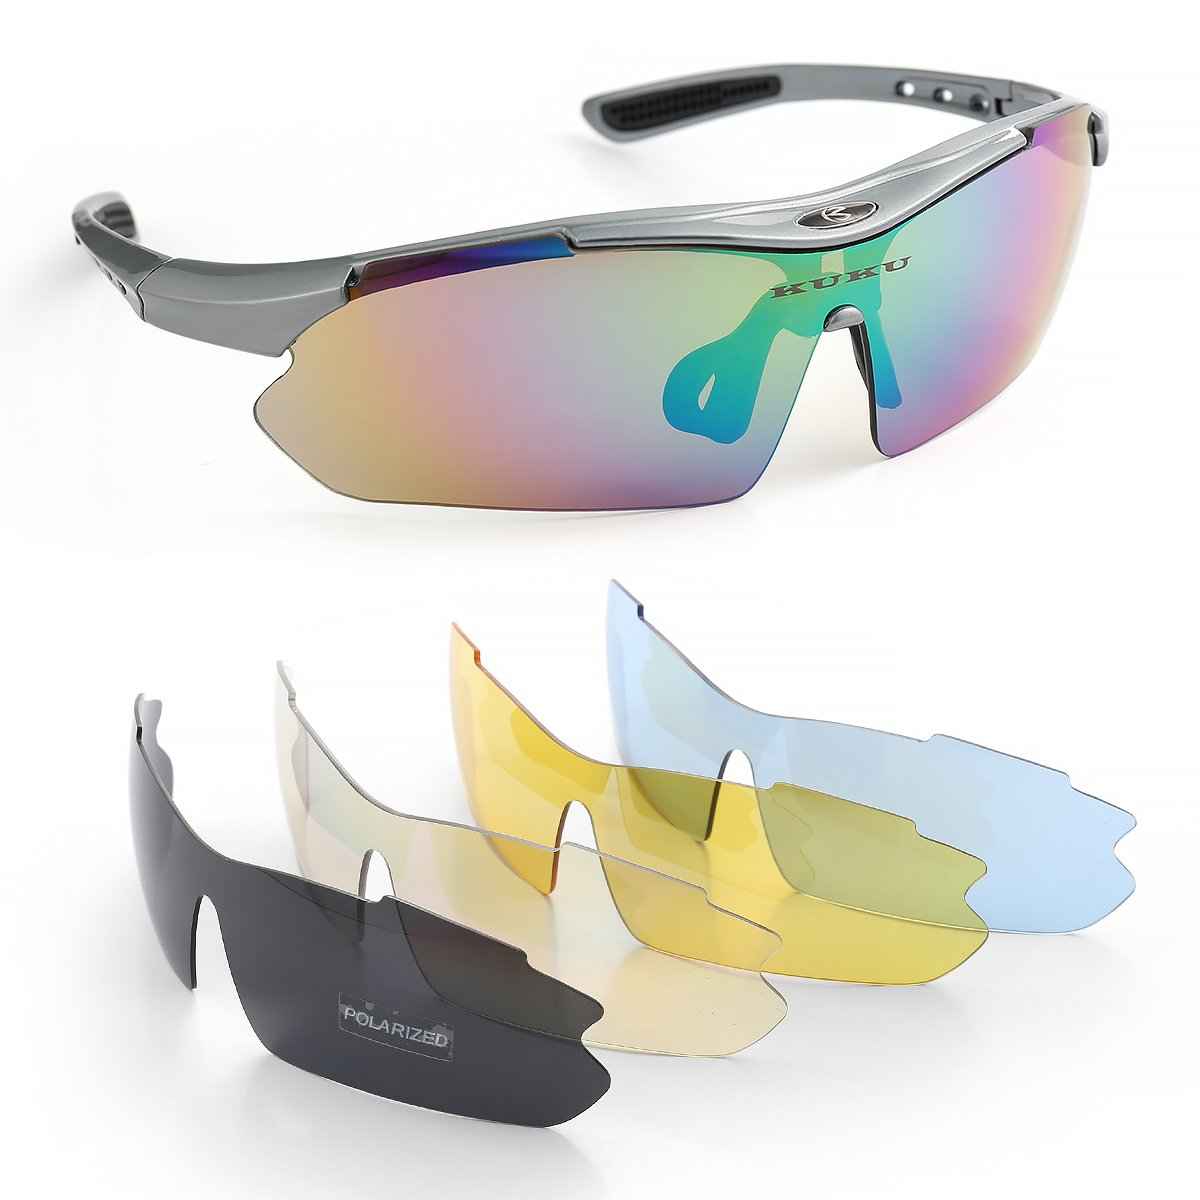 54e2d2ba3097 SPOSUNE Cycling Glasses Bicycle Sunglasses multi-purpose Sports Glasses  with 4Pcs Replacement Lenses For Riding Running Driving Climbing Motorcycle  And All ...